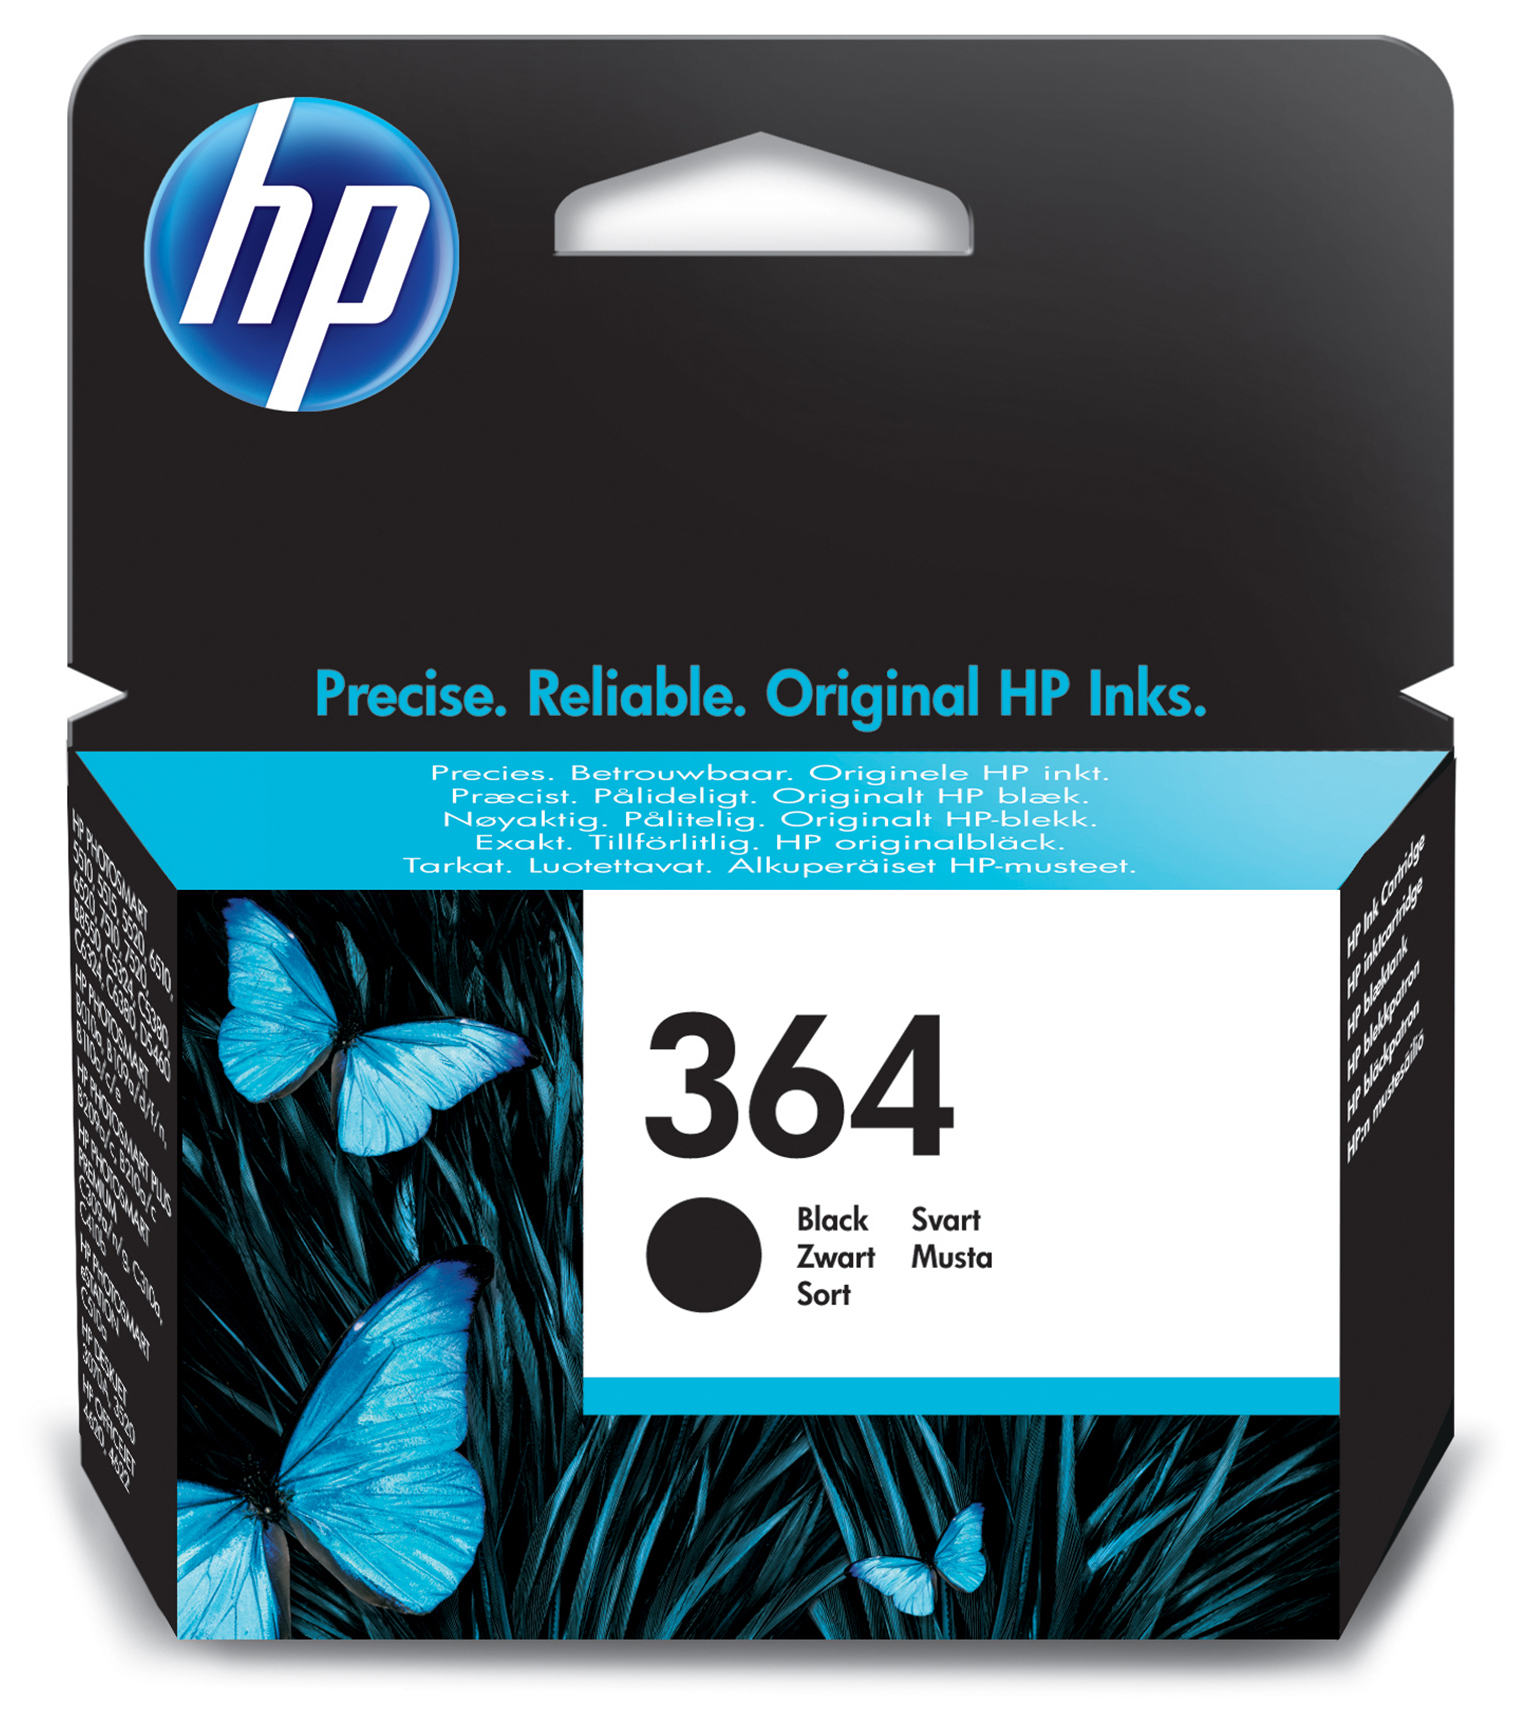 Hpcb316ee      Hp 364 Black Inkjet            Hp 364 Black Inkjet Print Cartridge                          - UF01